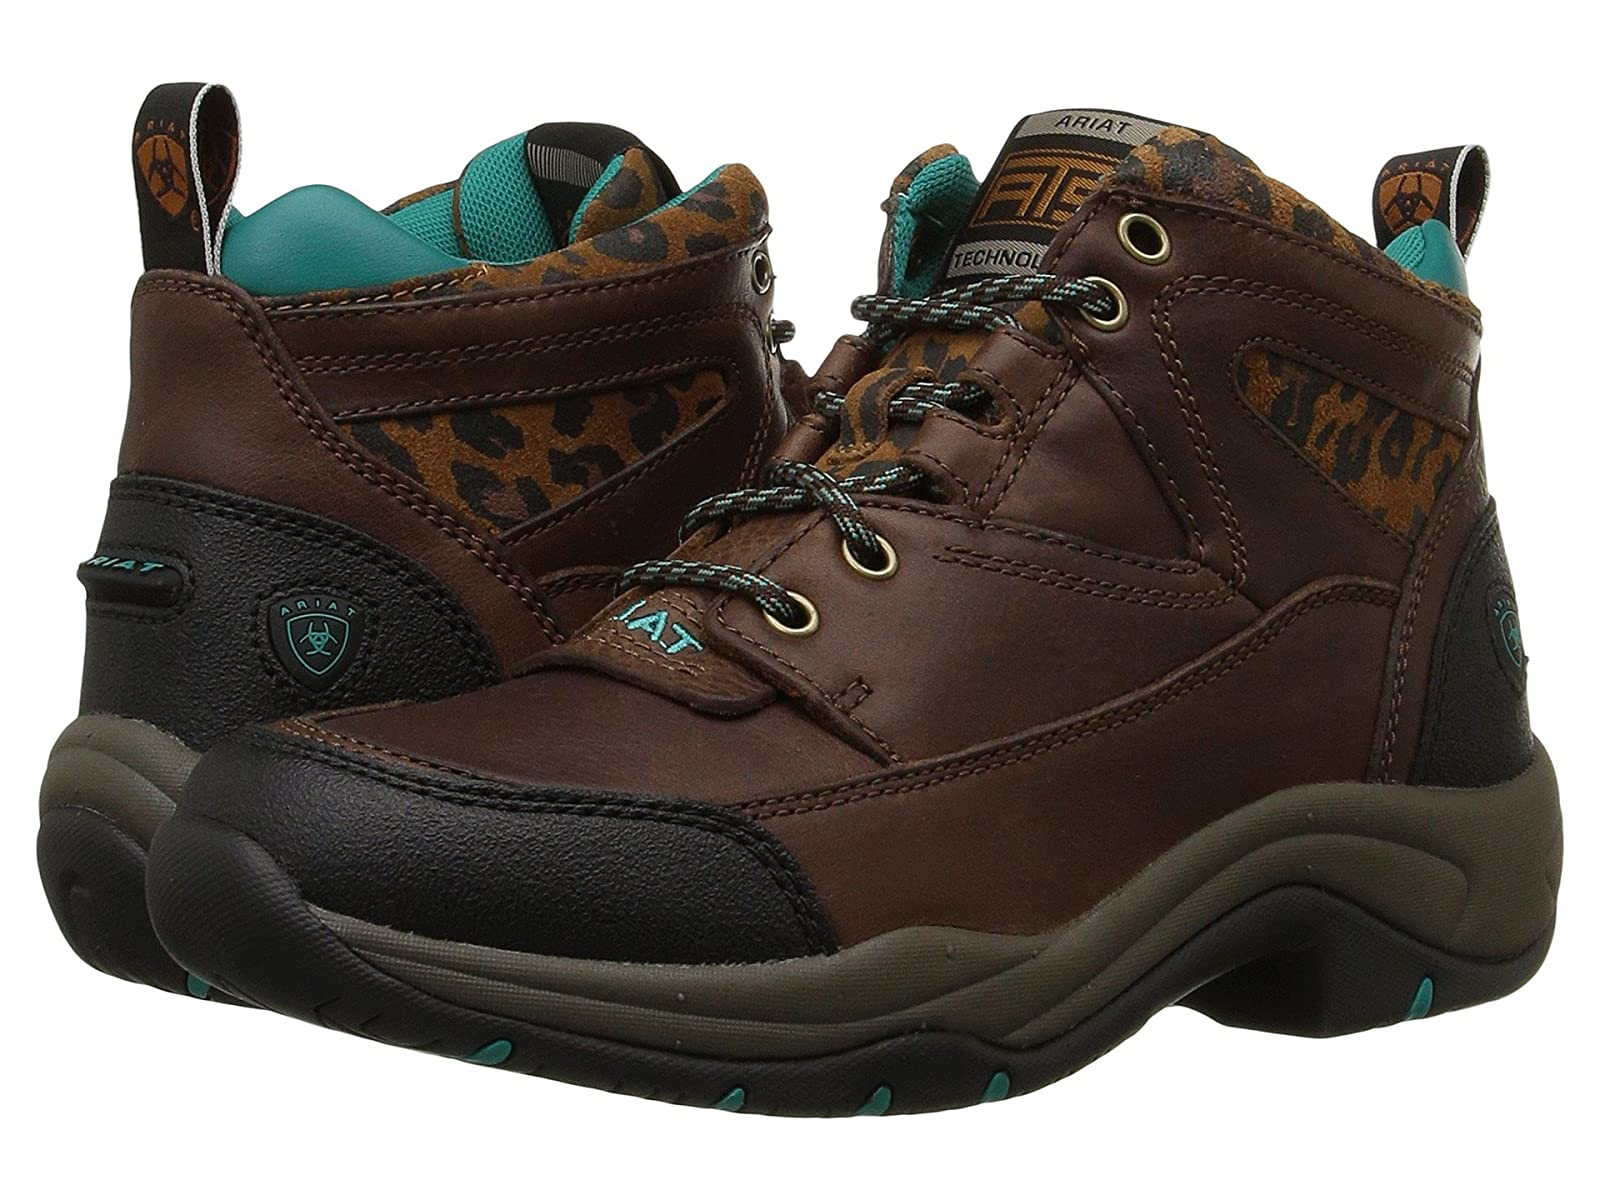 Ariat TerrainSelling fashionable and eye-catching shoes